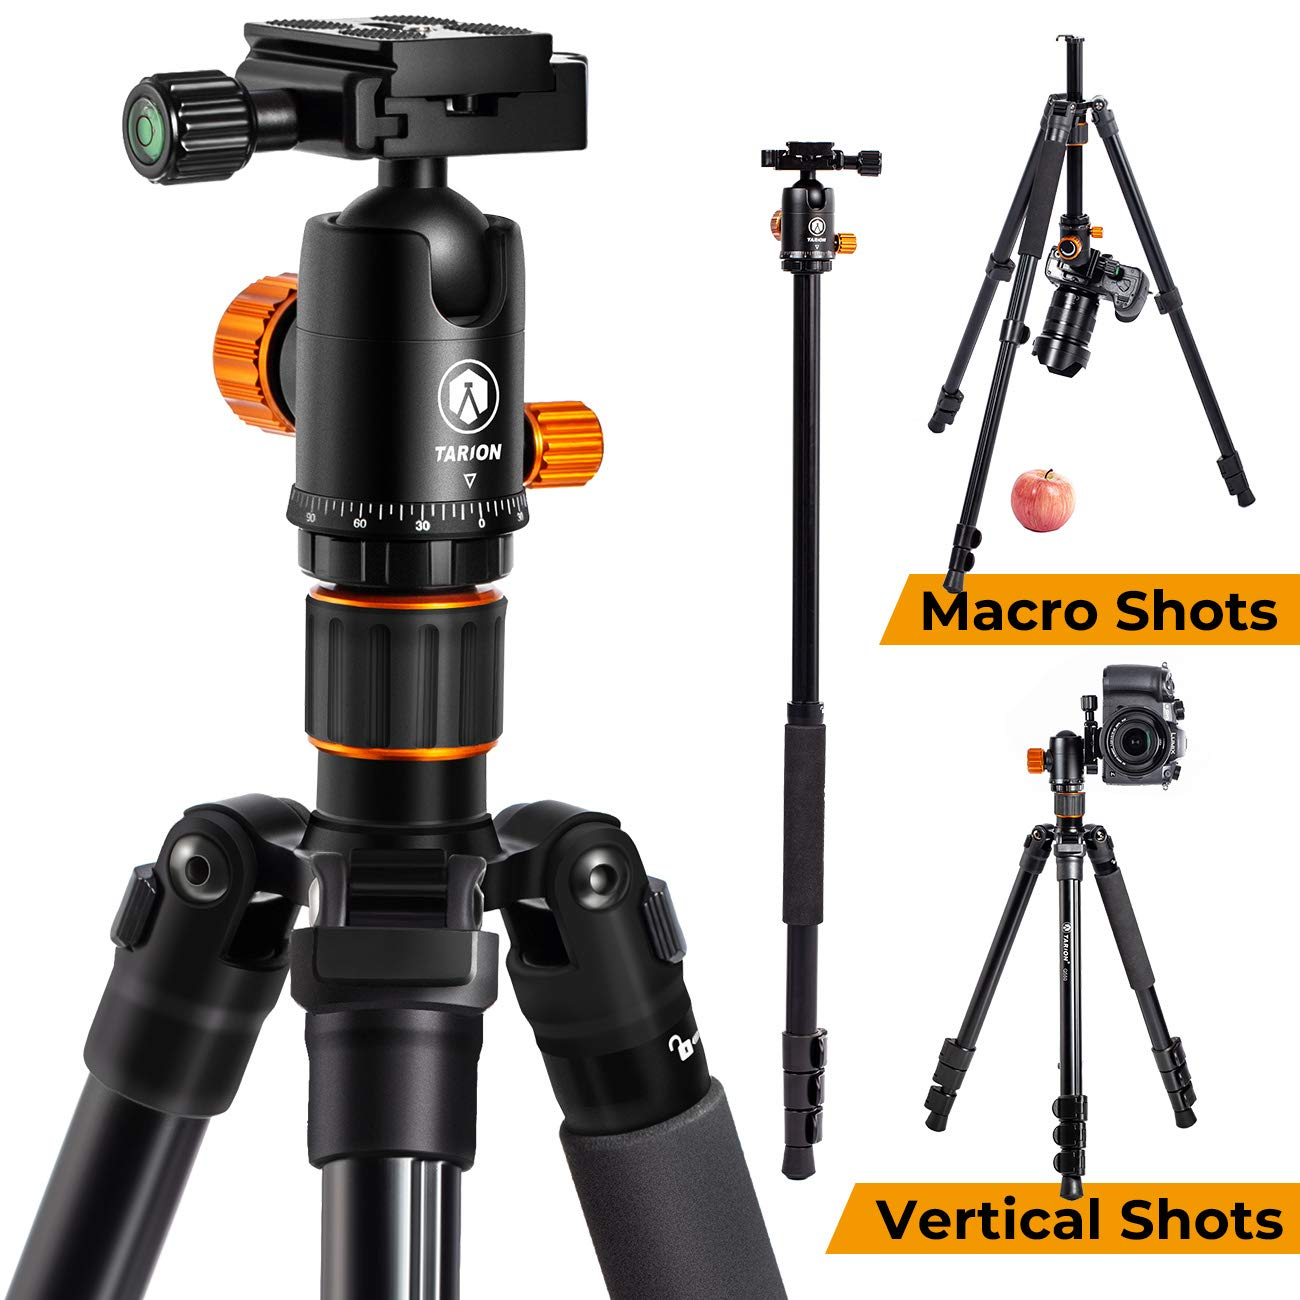 TARION Camera Tripod Monopod 61in with Panorama Ball Head Aluminium Travel Tripod for DSLR Mirrorless Cameras Support Macro Shots Counter Weight 13lb Payload Lightweight 16.9'' Foldable Size